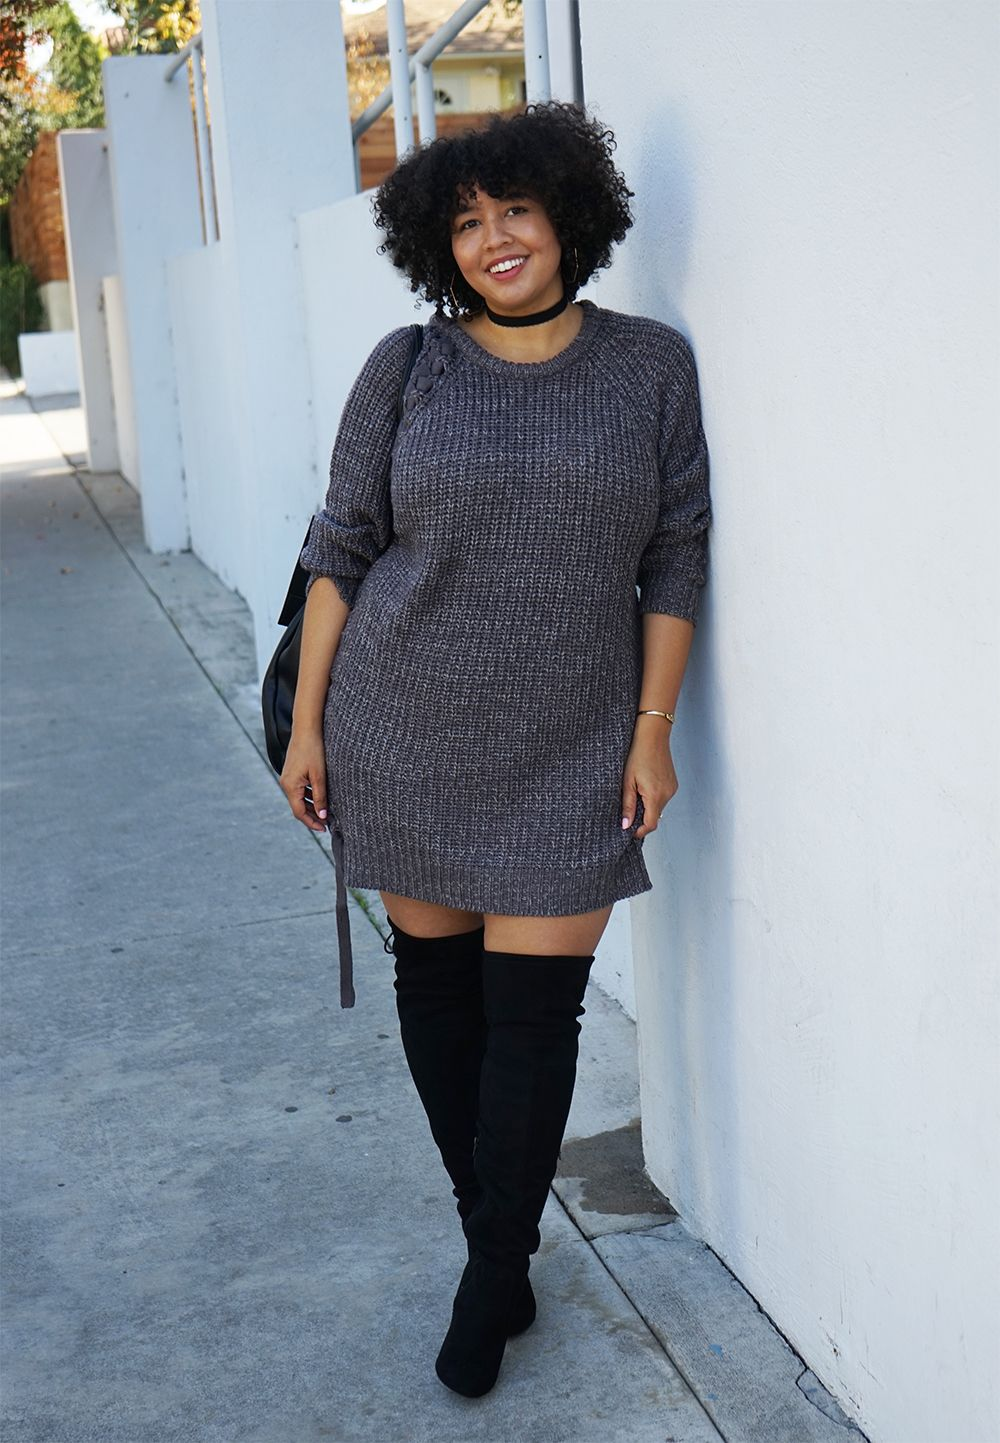 Sweater Dress And Over The Knee Boots I Feel Like You Could Really Rock Over The Knee Boots September Outfits Curvy Outfits Transition Outfits